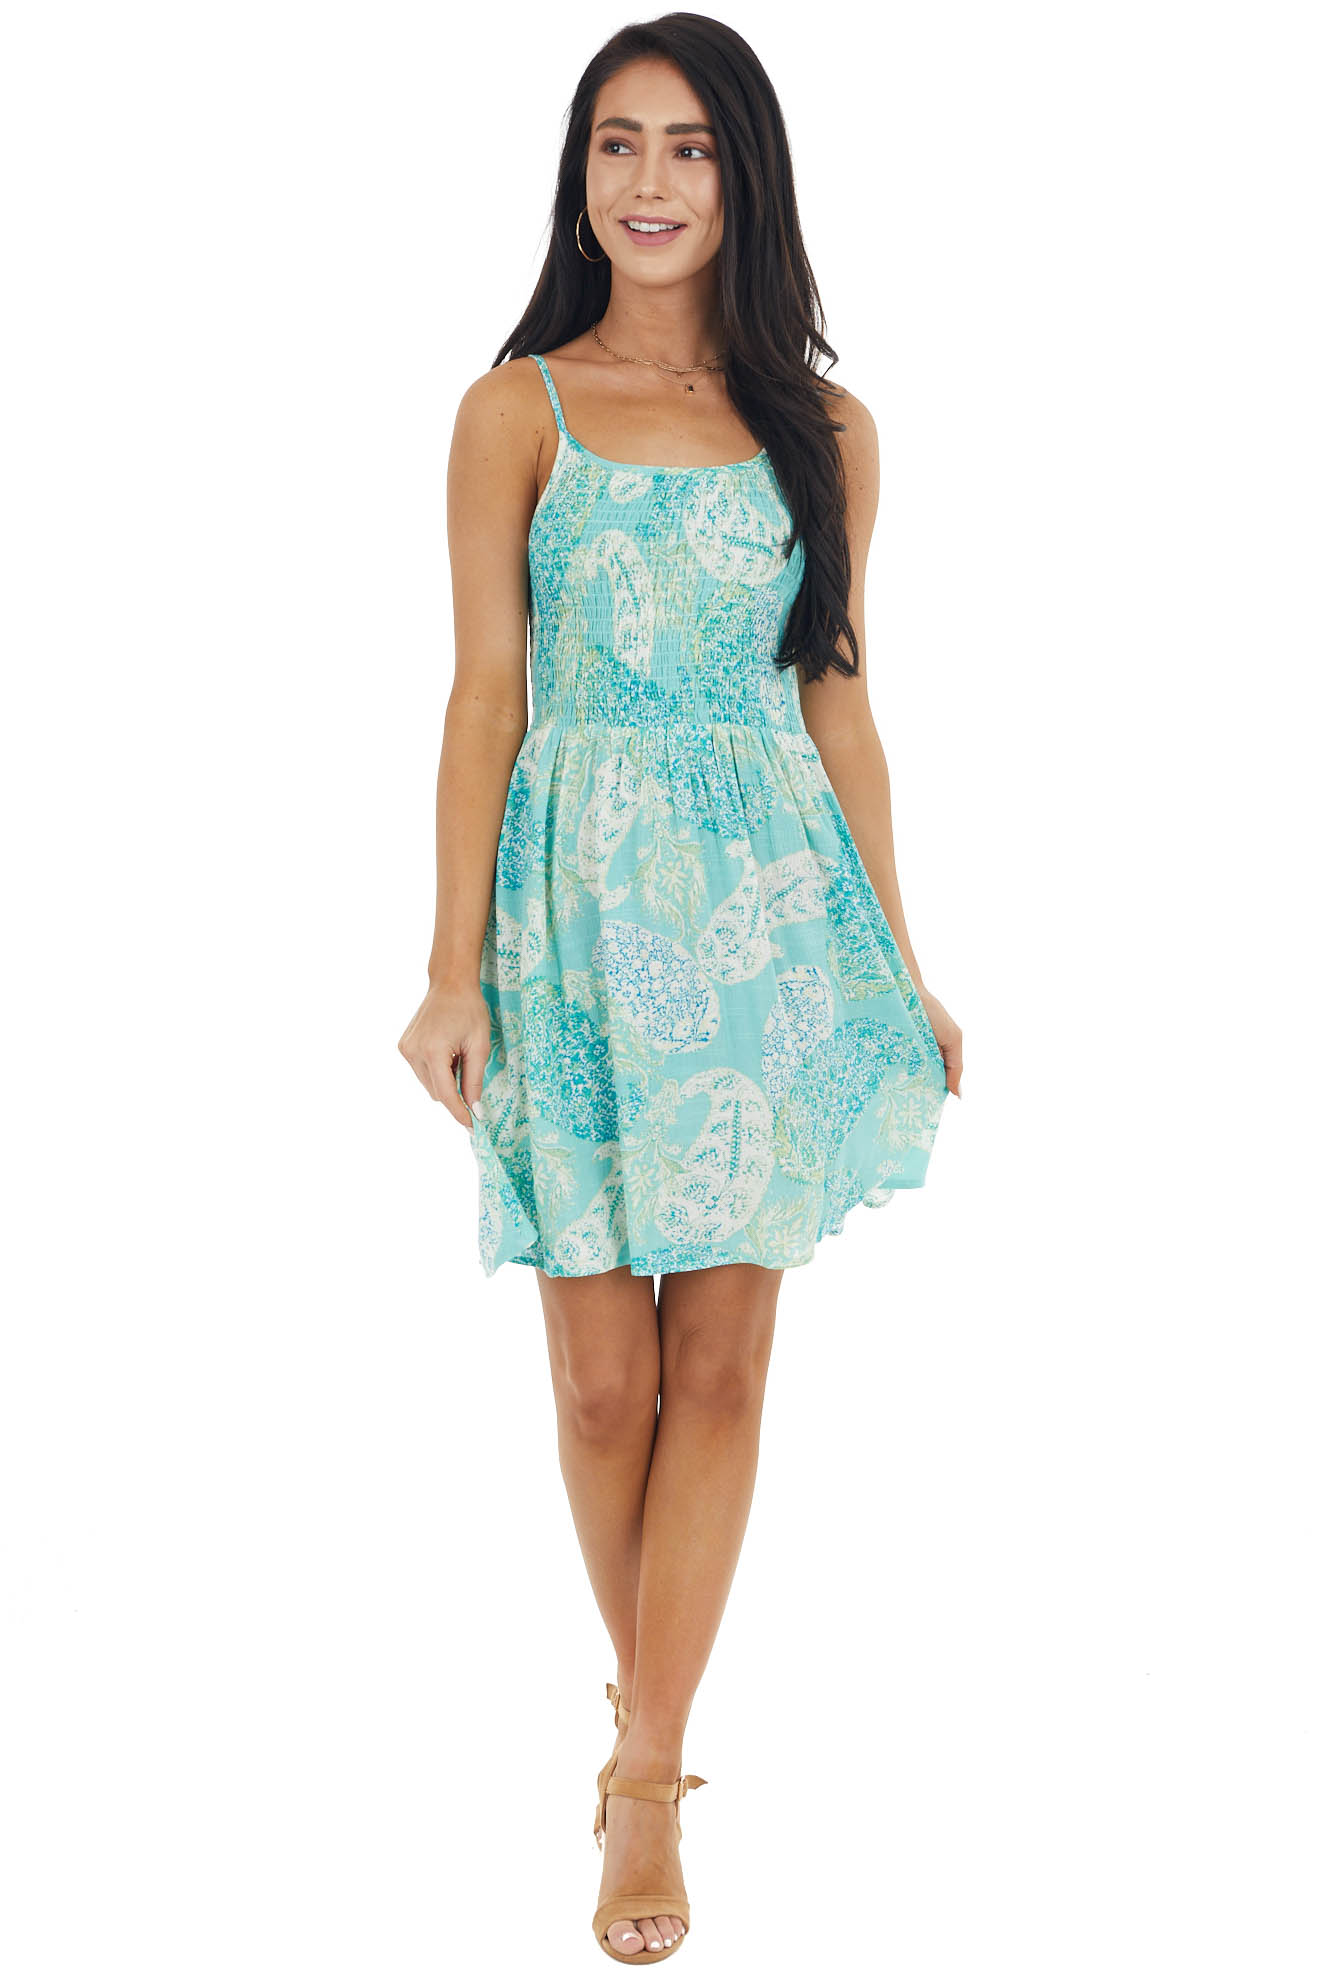 Vintage Aqua Abstract Paisley Print Sleeveless Mini Dress